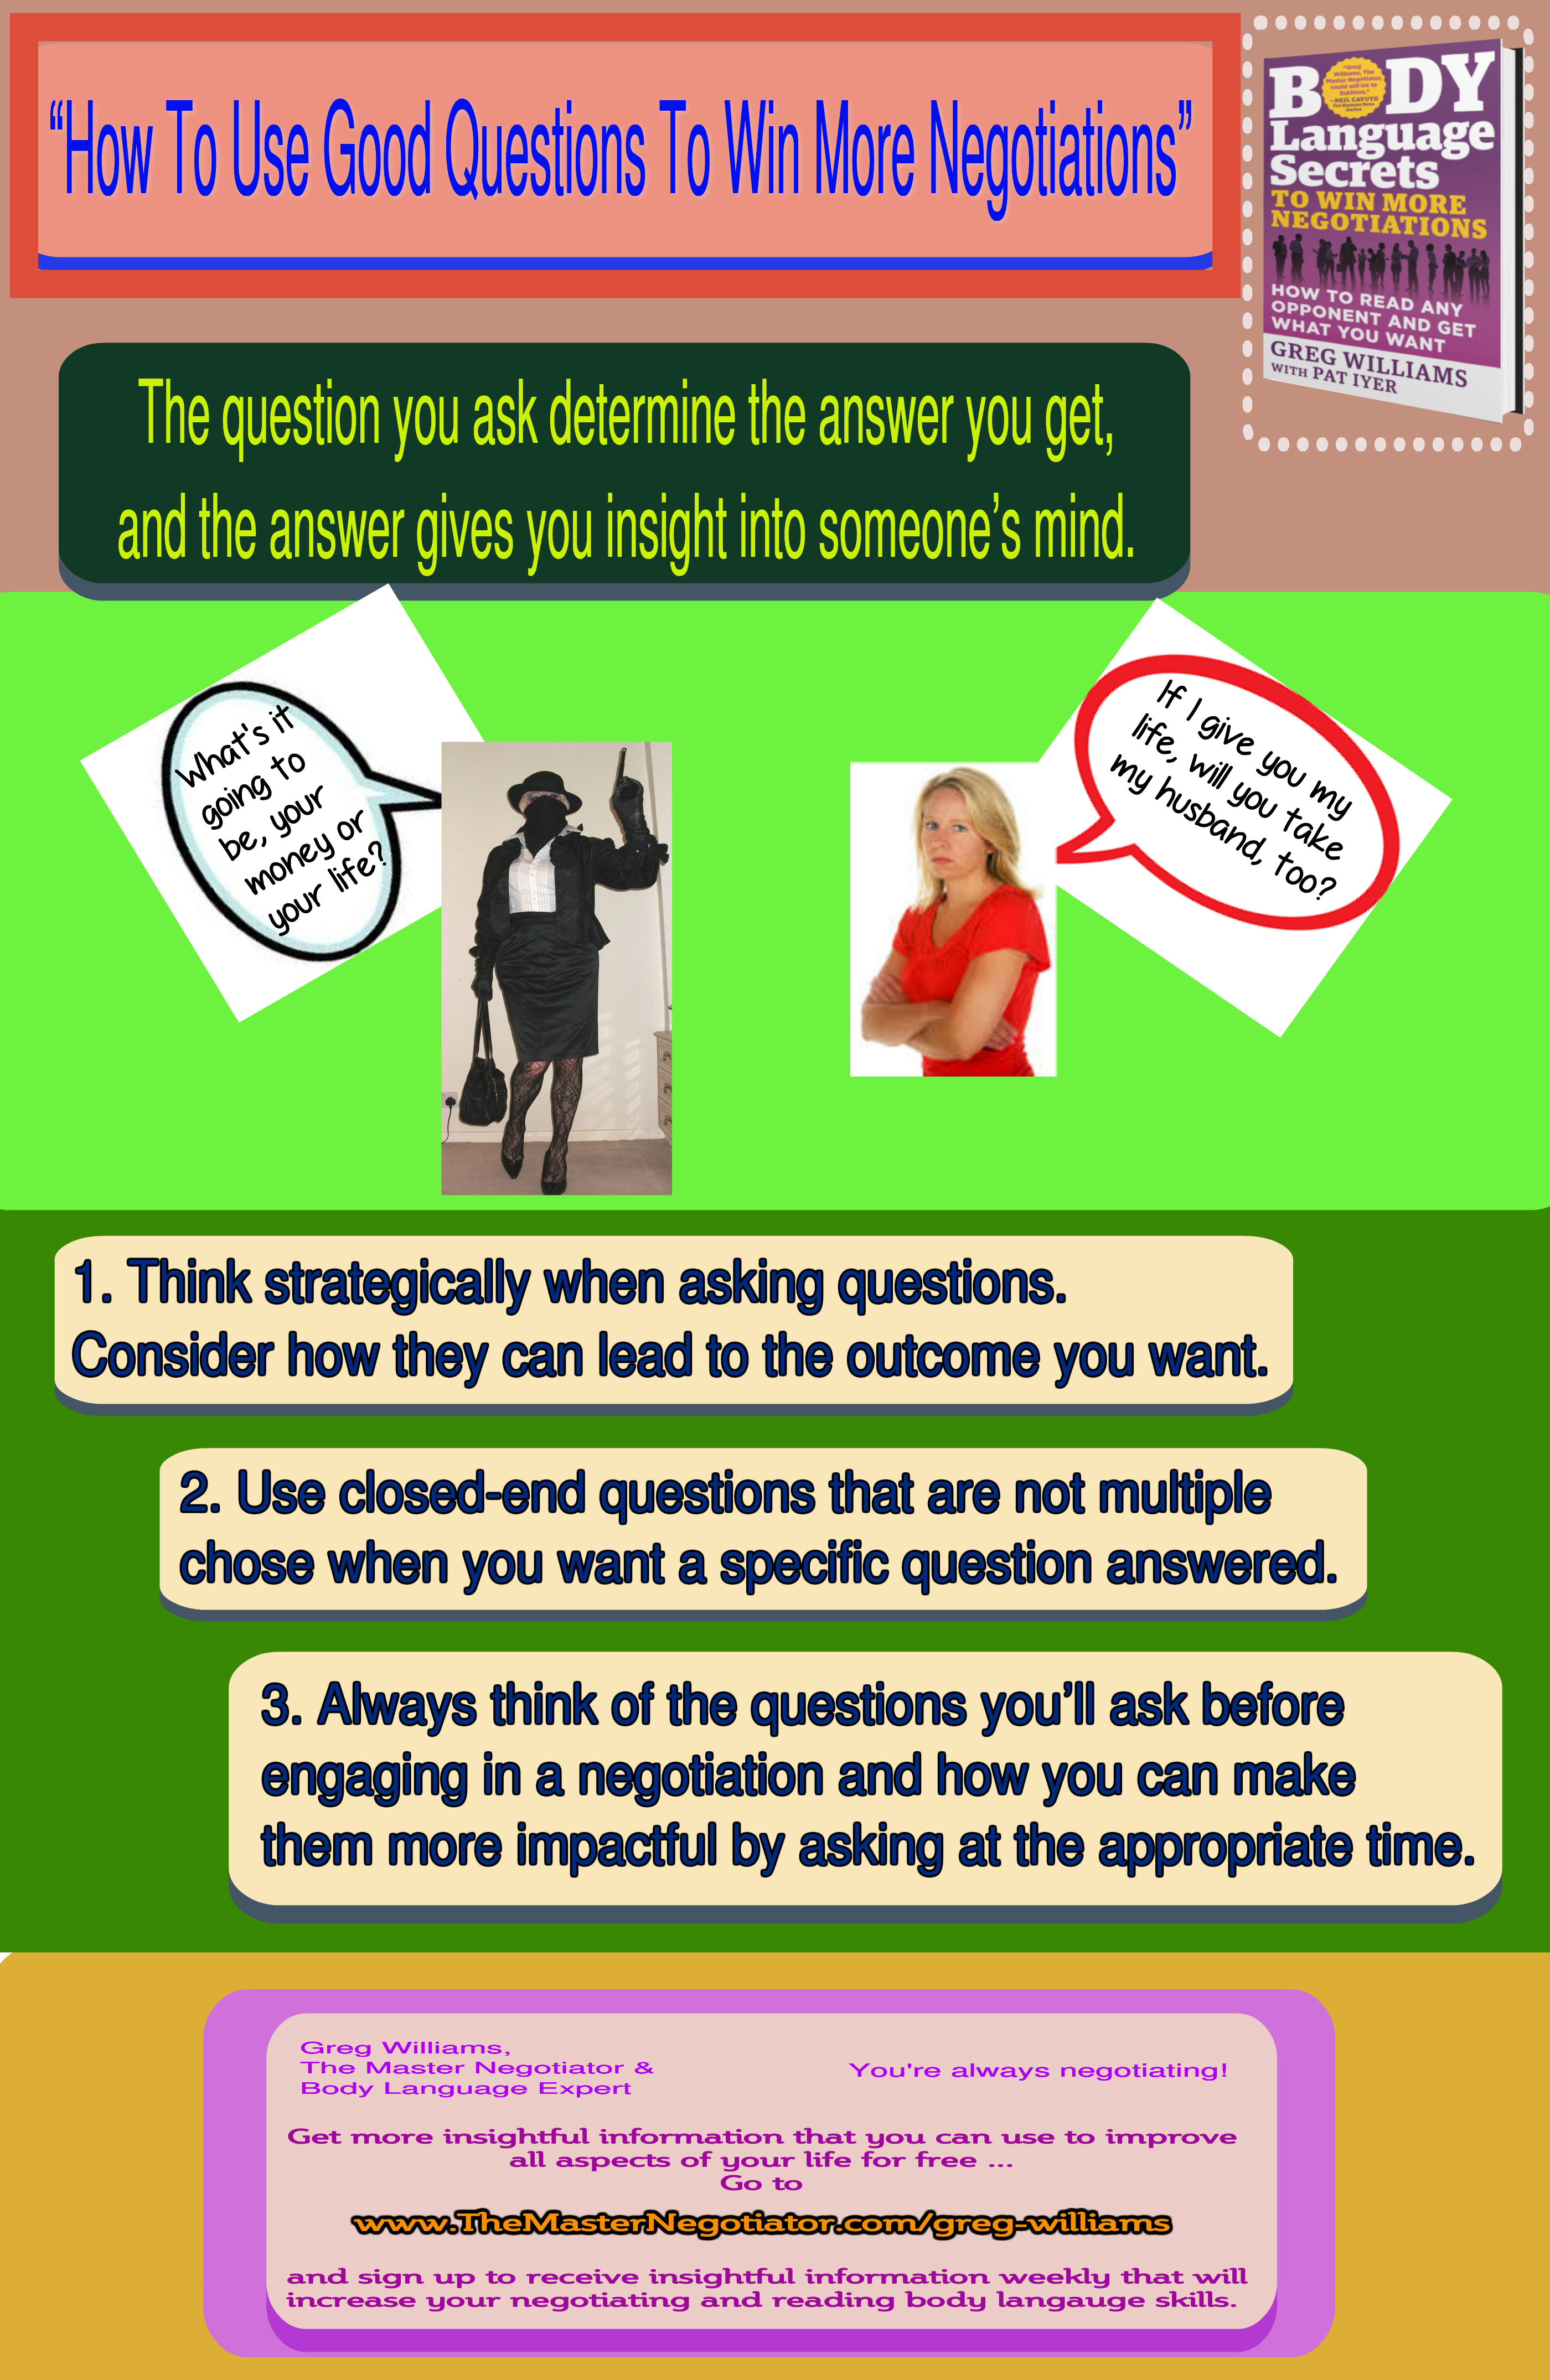 How To Use Good Questions To Win More Negotiations